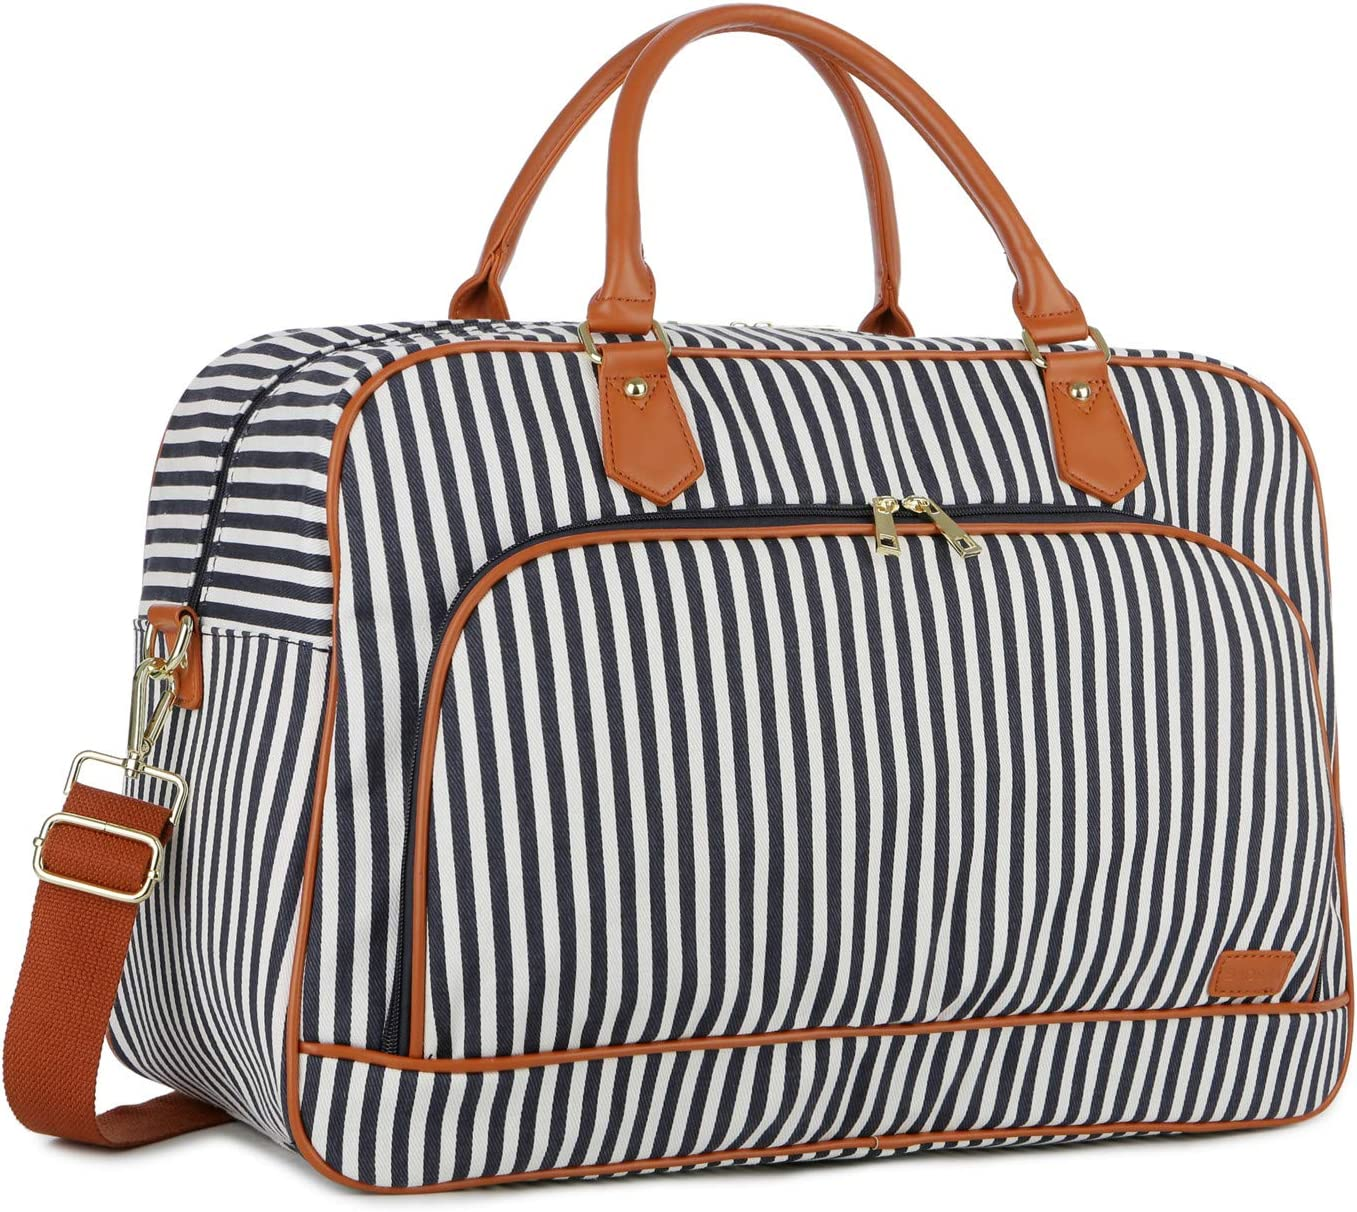 BAOSHA Large Canvas Travel Tote Duffel Bag Carry on Weekender Overnight Bag for Women HB-35 Blue Striped